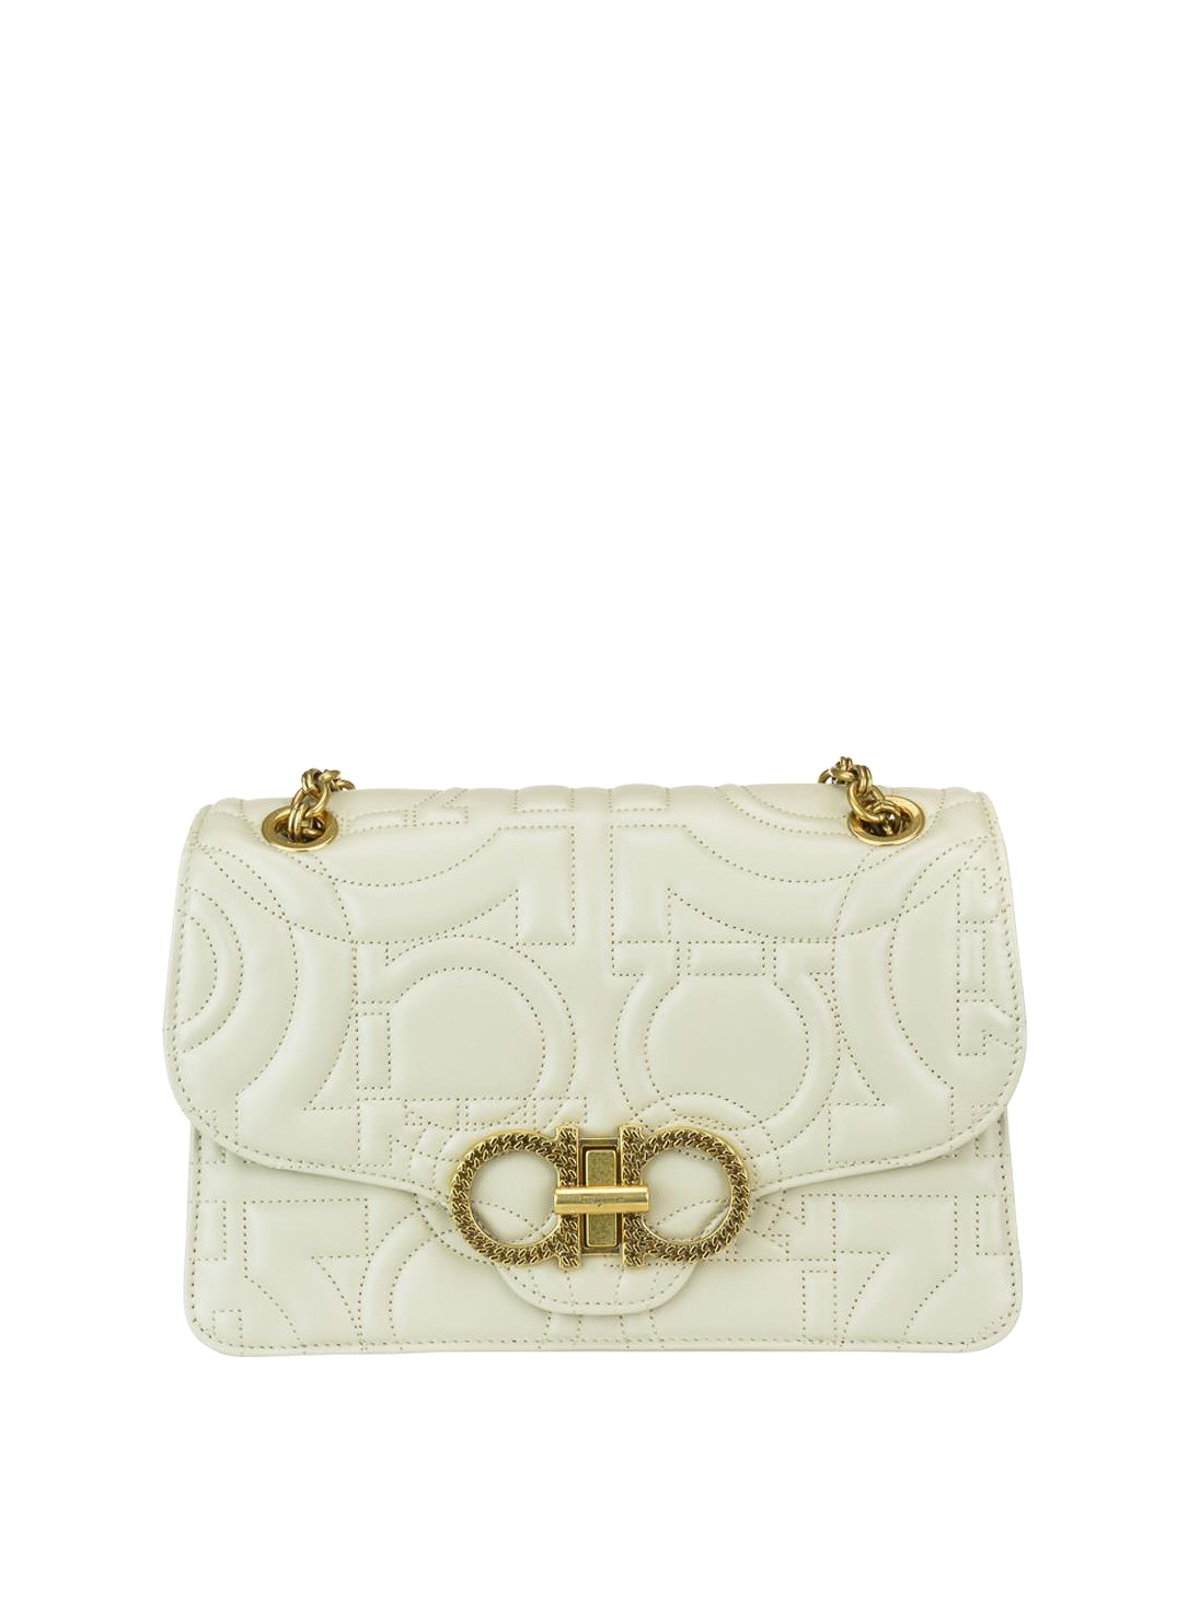 SALVATORE FERRAGAMO  shoulder bags - Gancini white quilted leather shoulder  bag e5af9b07ff